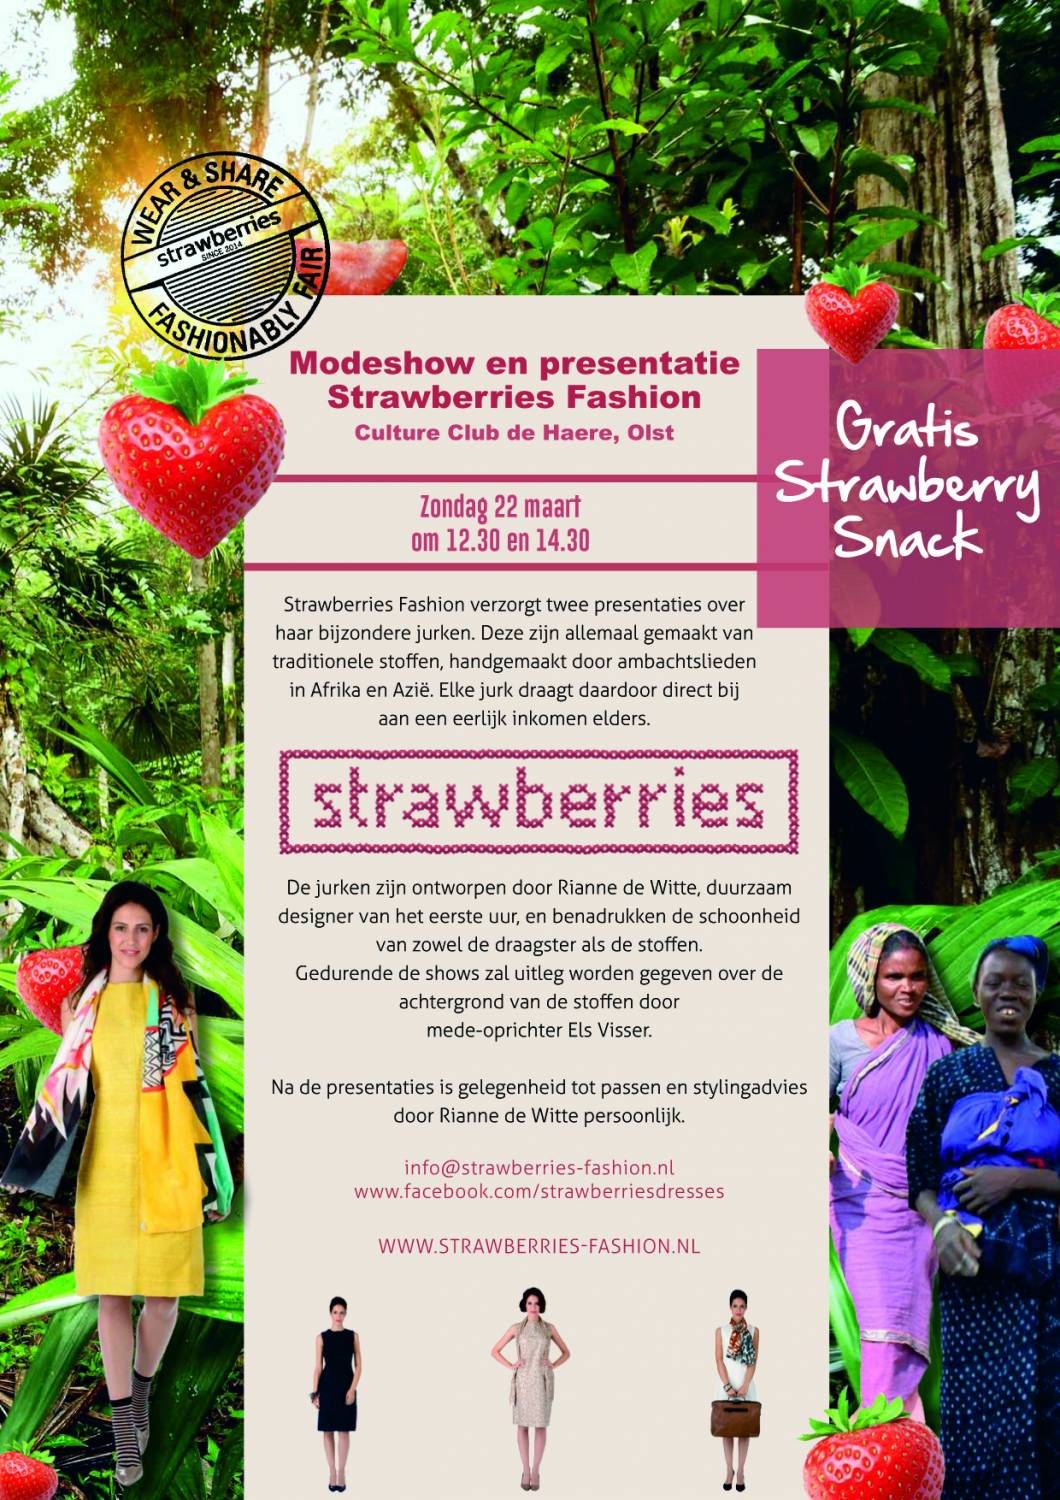 UITNODIGING MODESHOW EN PRESENTATIE STRAWBERRIES FASHION